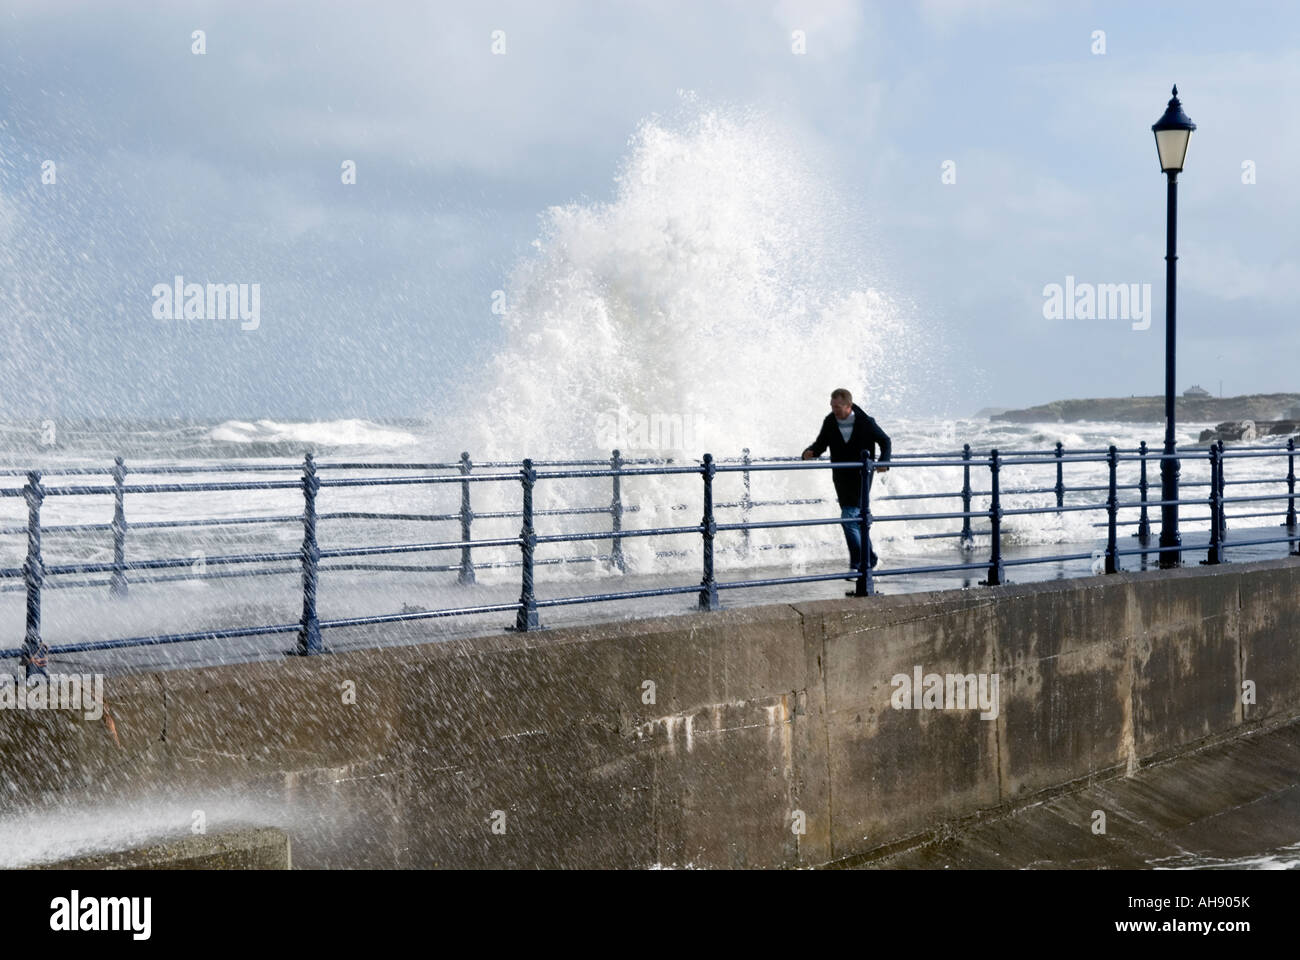 Wave dodging at  Amble in Northumberland 'Great Britain' - Stock Image